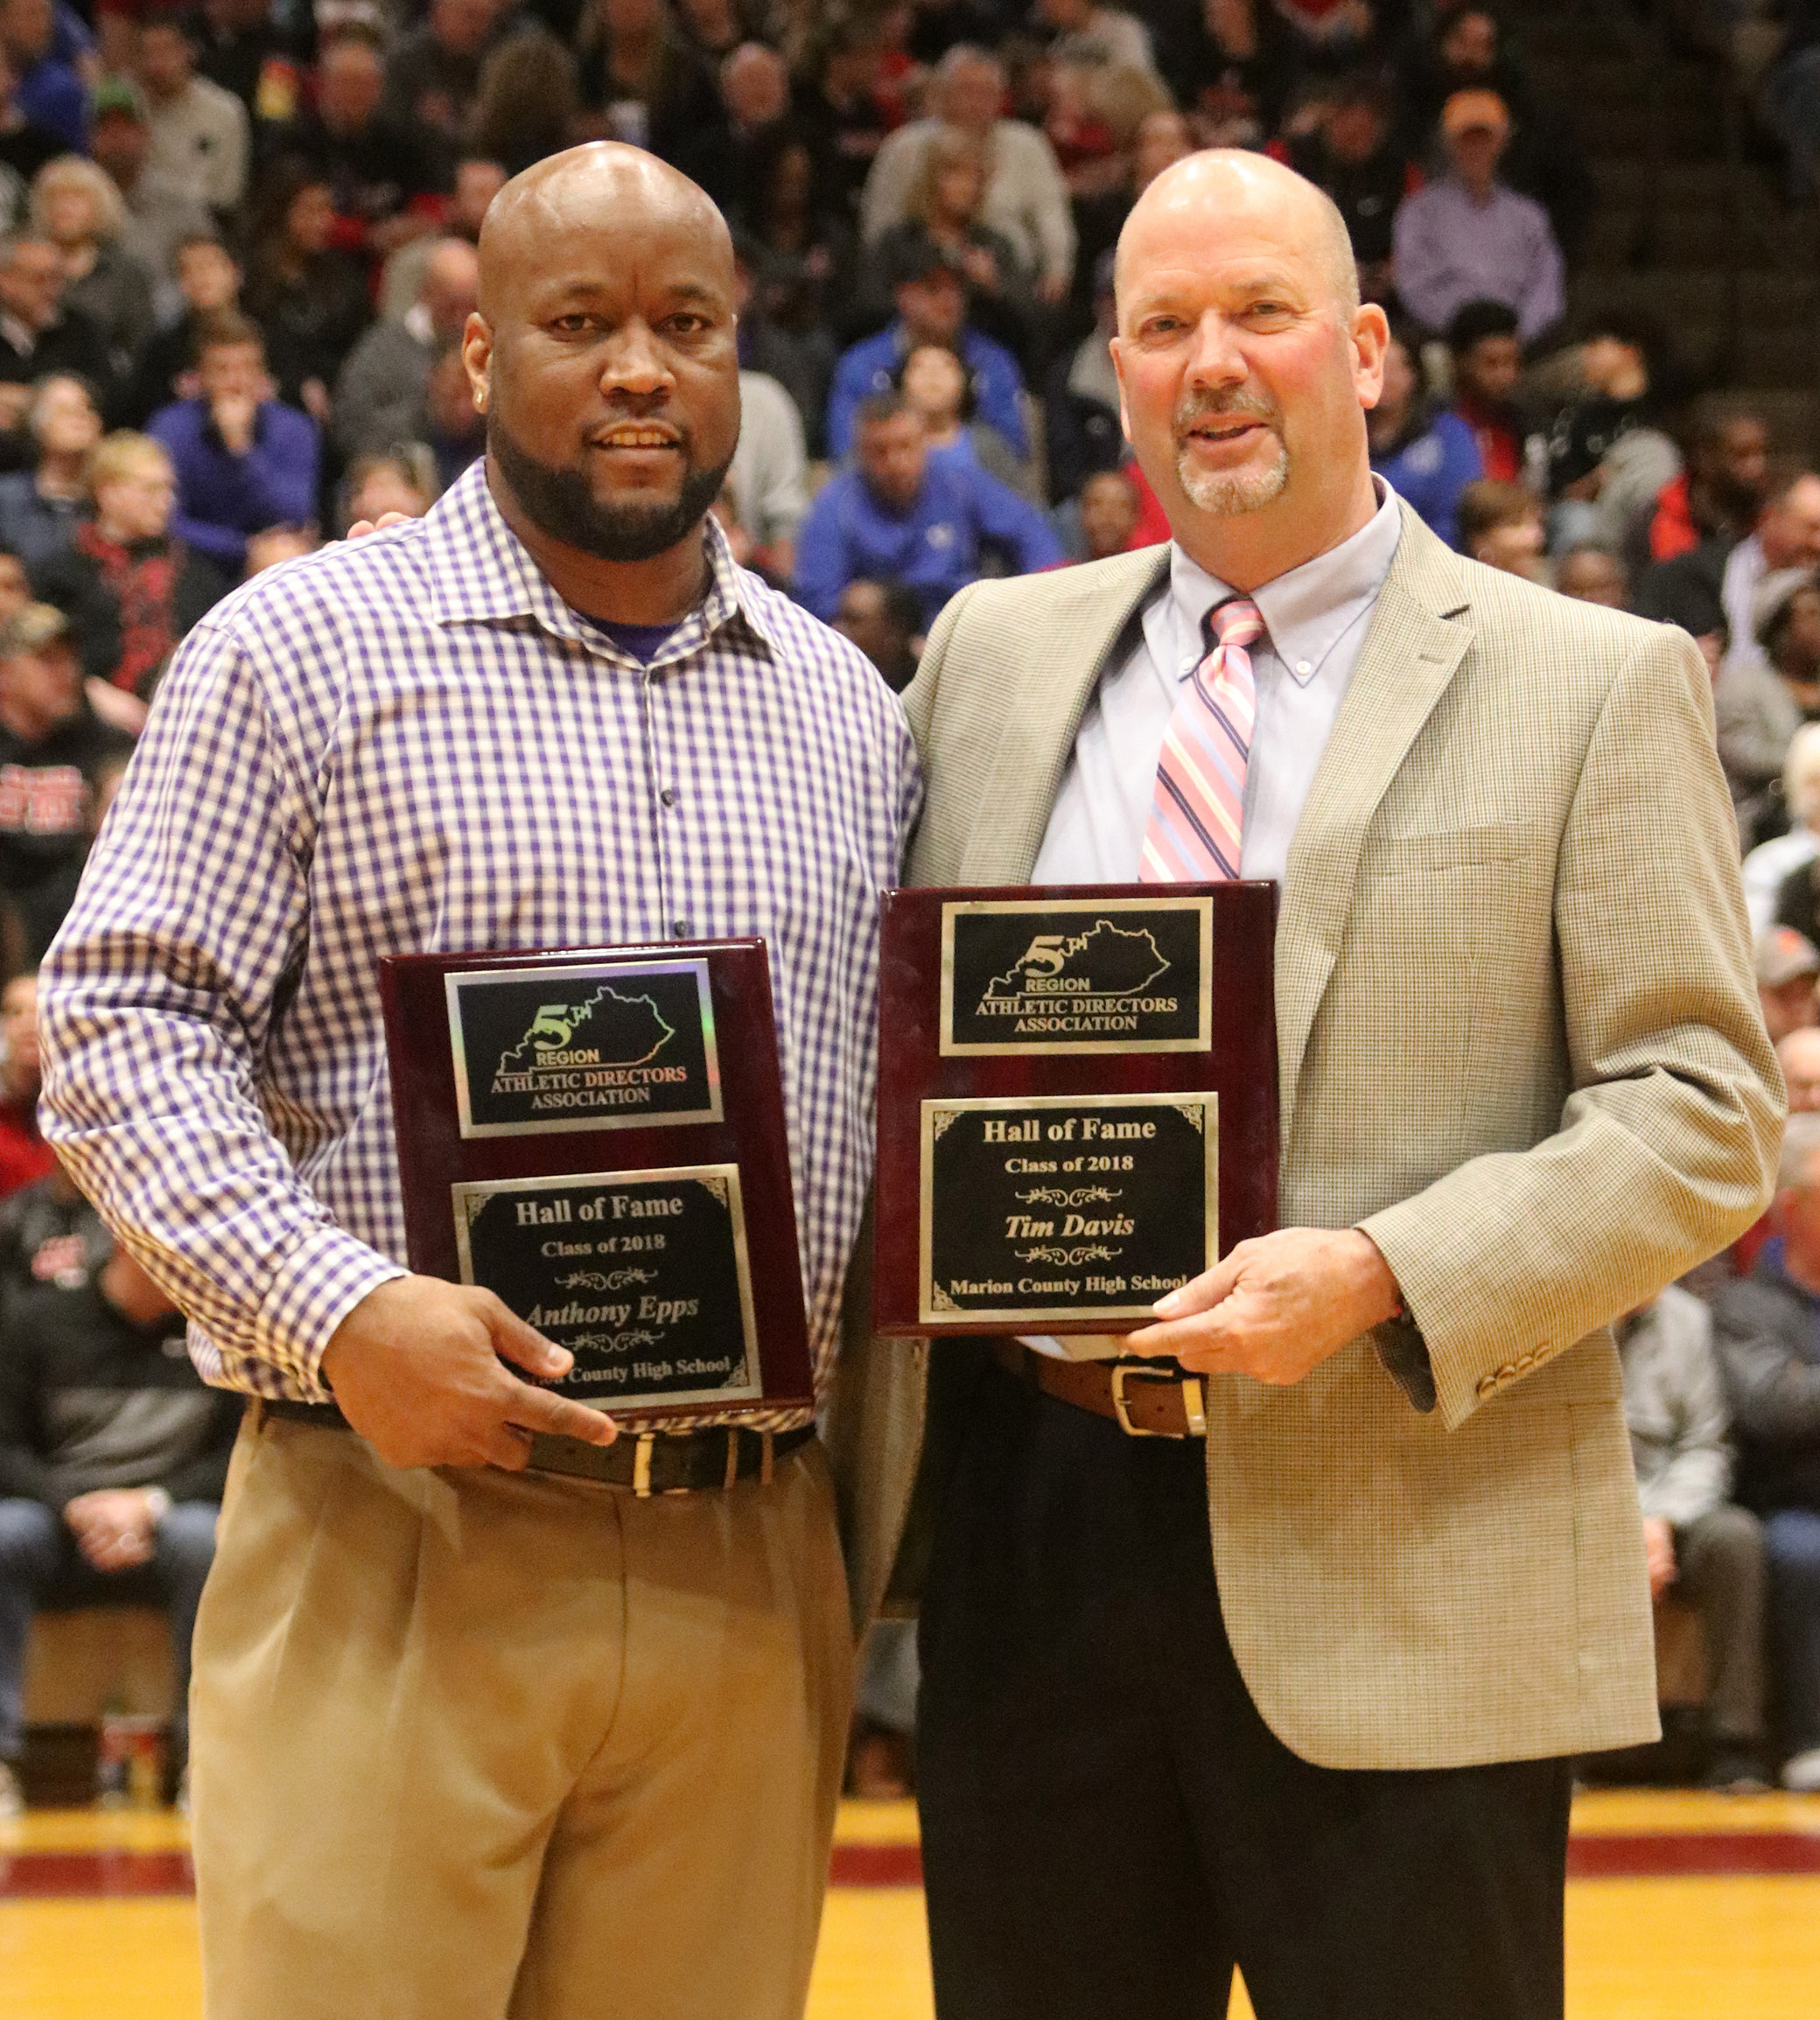 CHS girls' basketball head coach Anthony Epps, at left, and CHS boys' basketball head coach Tim Davis were induced into the 5th Region Athletic Director's Hall of Fame in a special ceremony at Marion County High School on Tuesday, March 6.